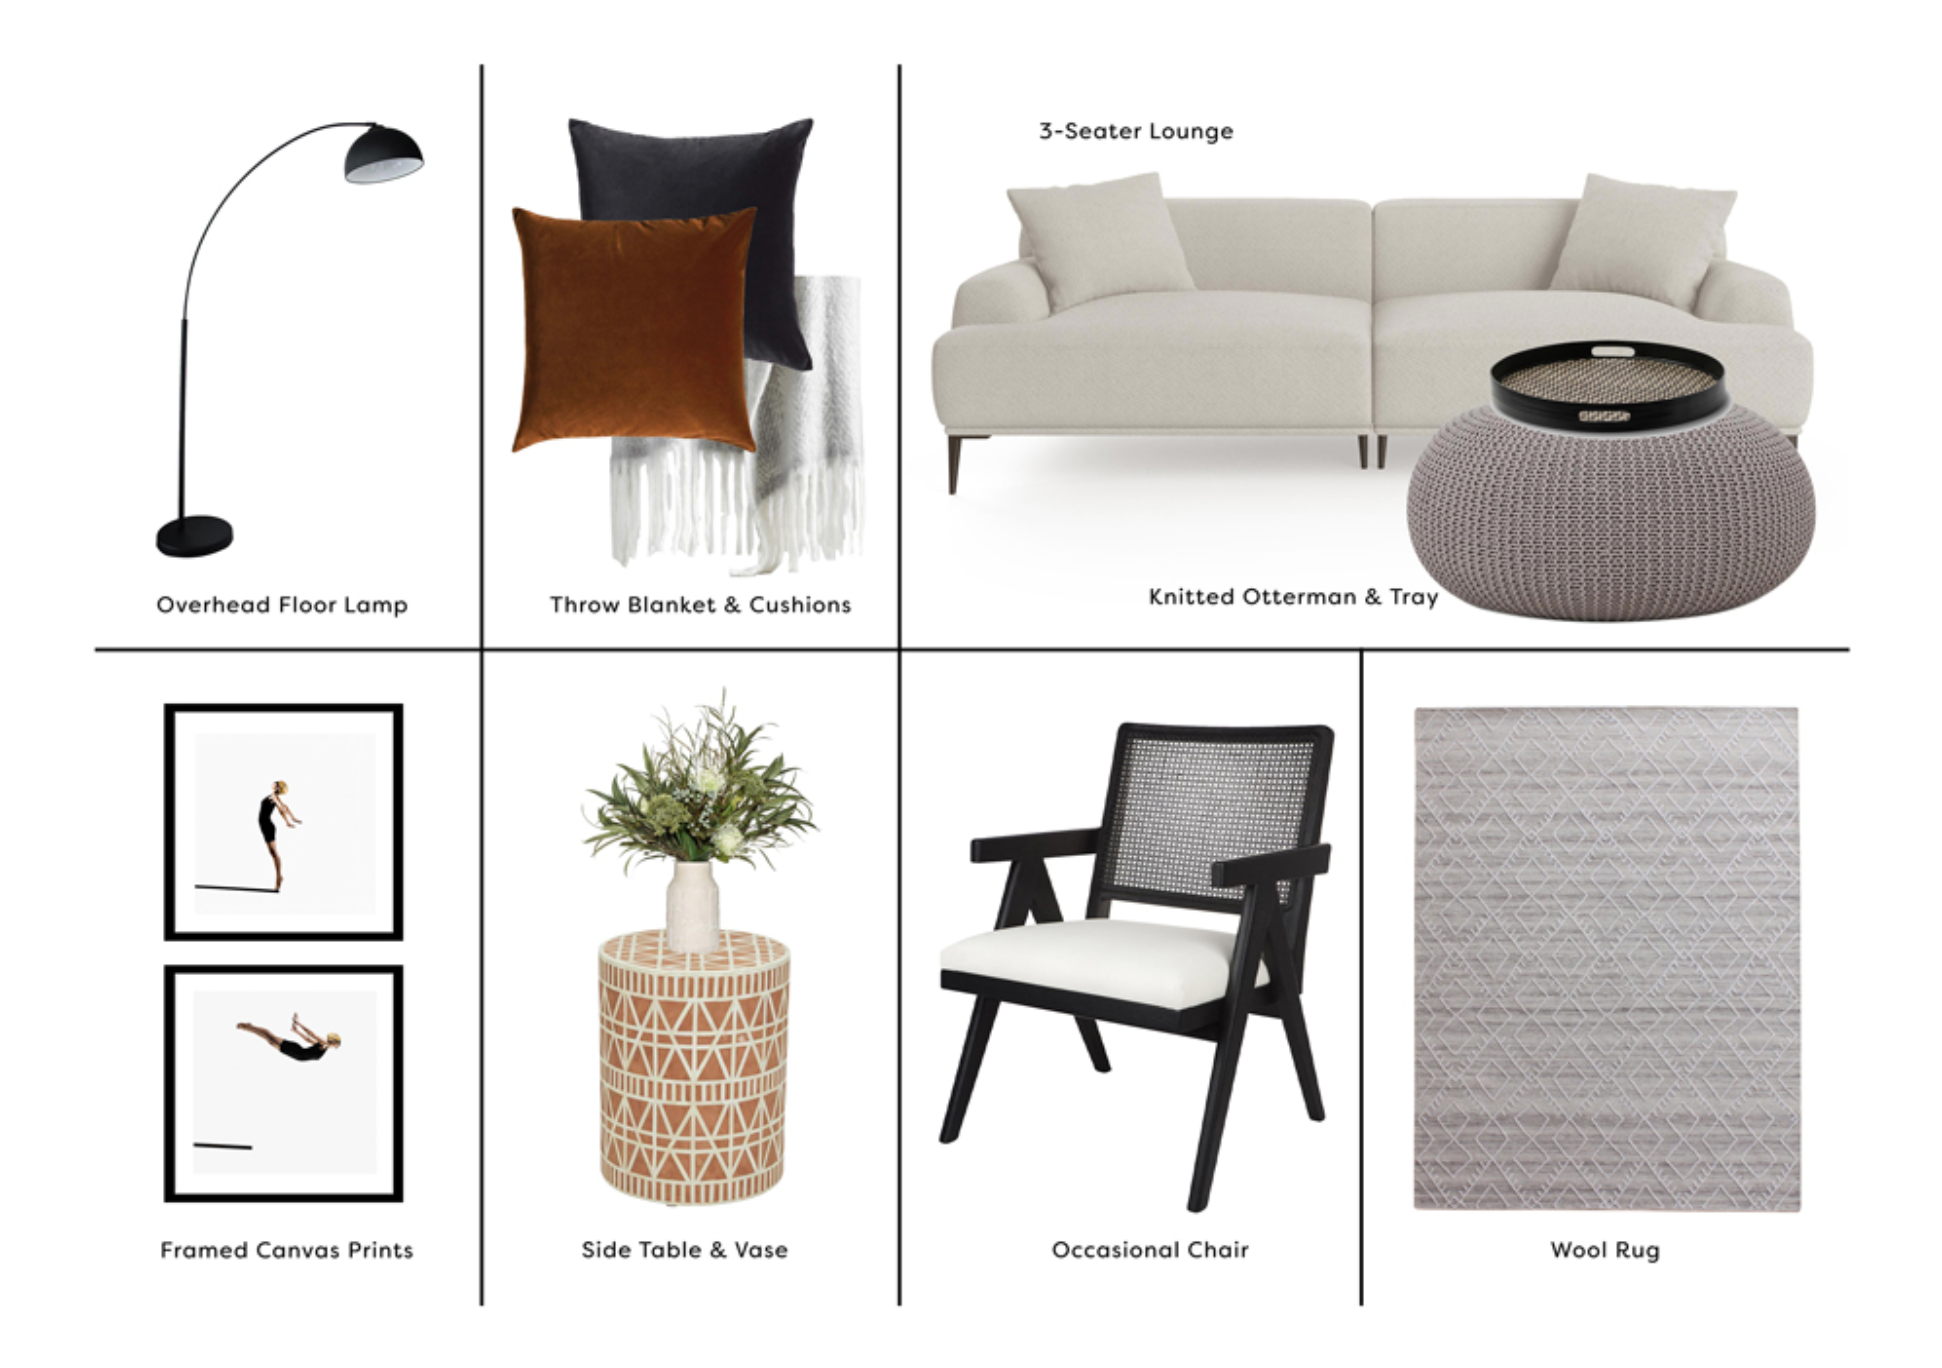 chic_contemporary_living_area_product_board